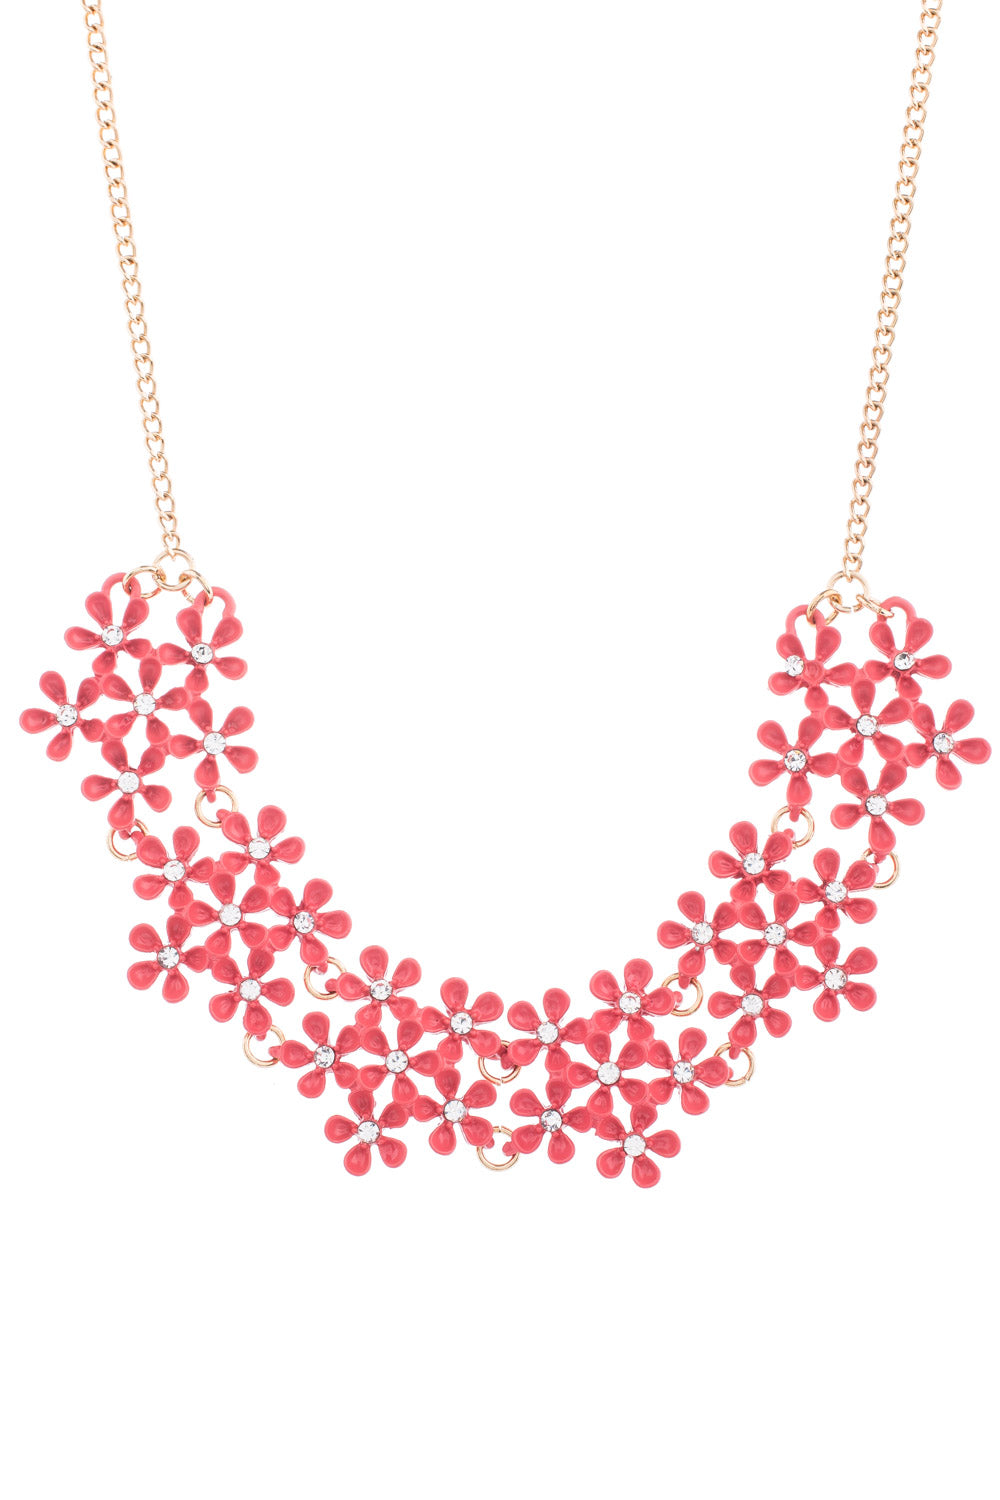 Type 1 Mokara Orchids Necklace